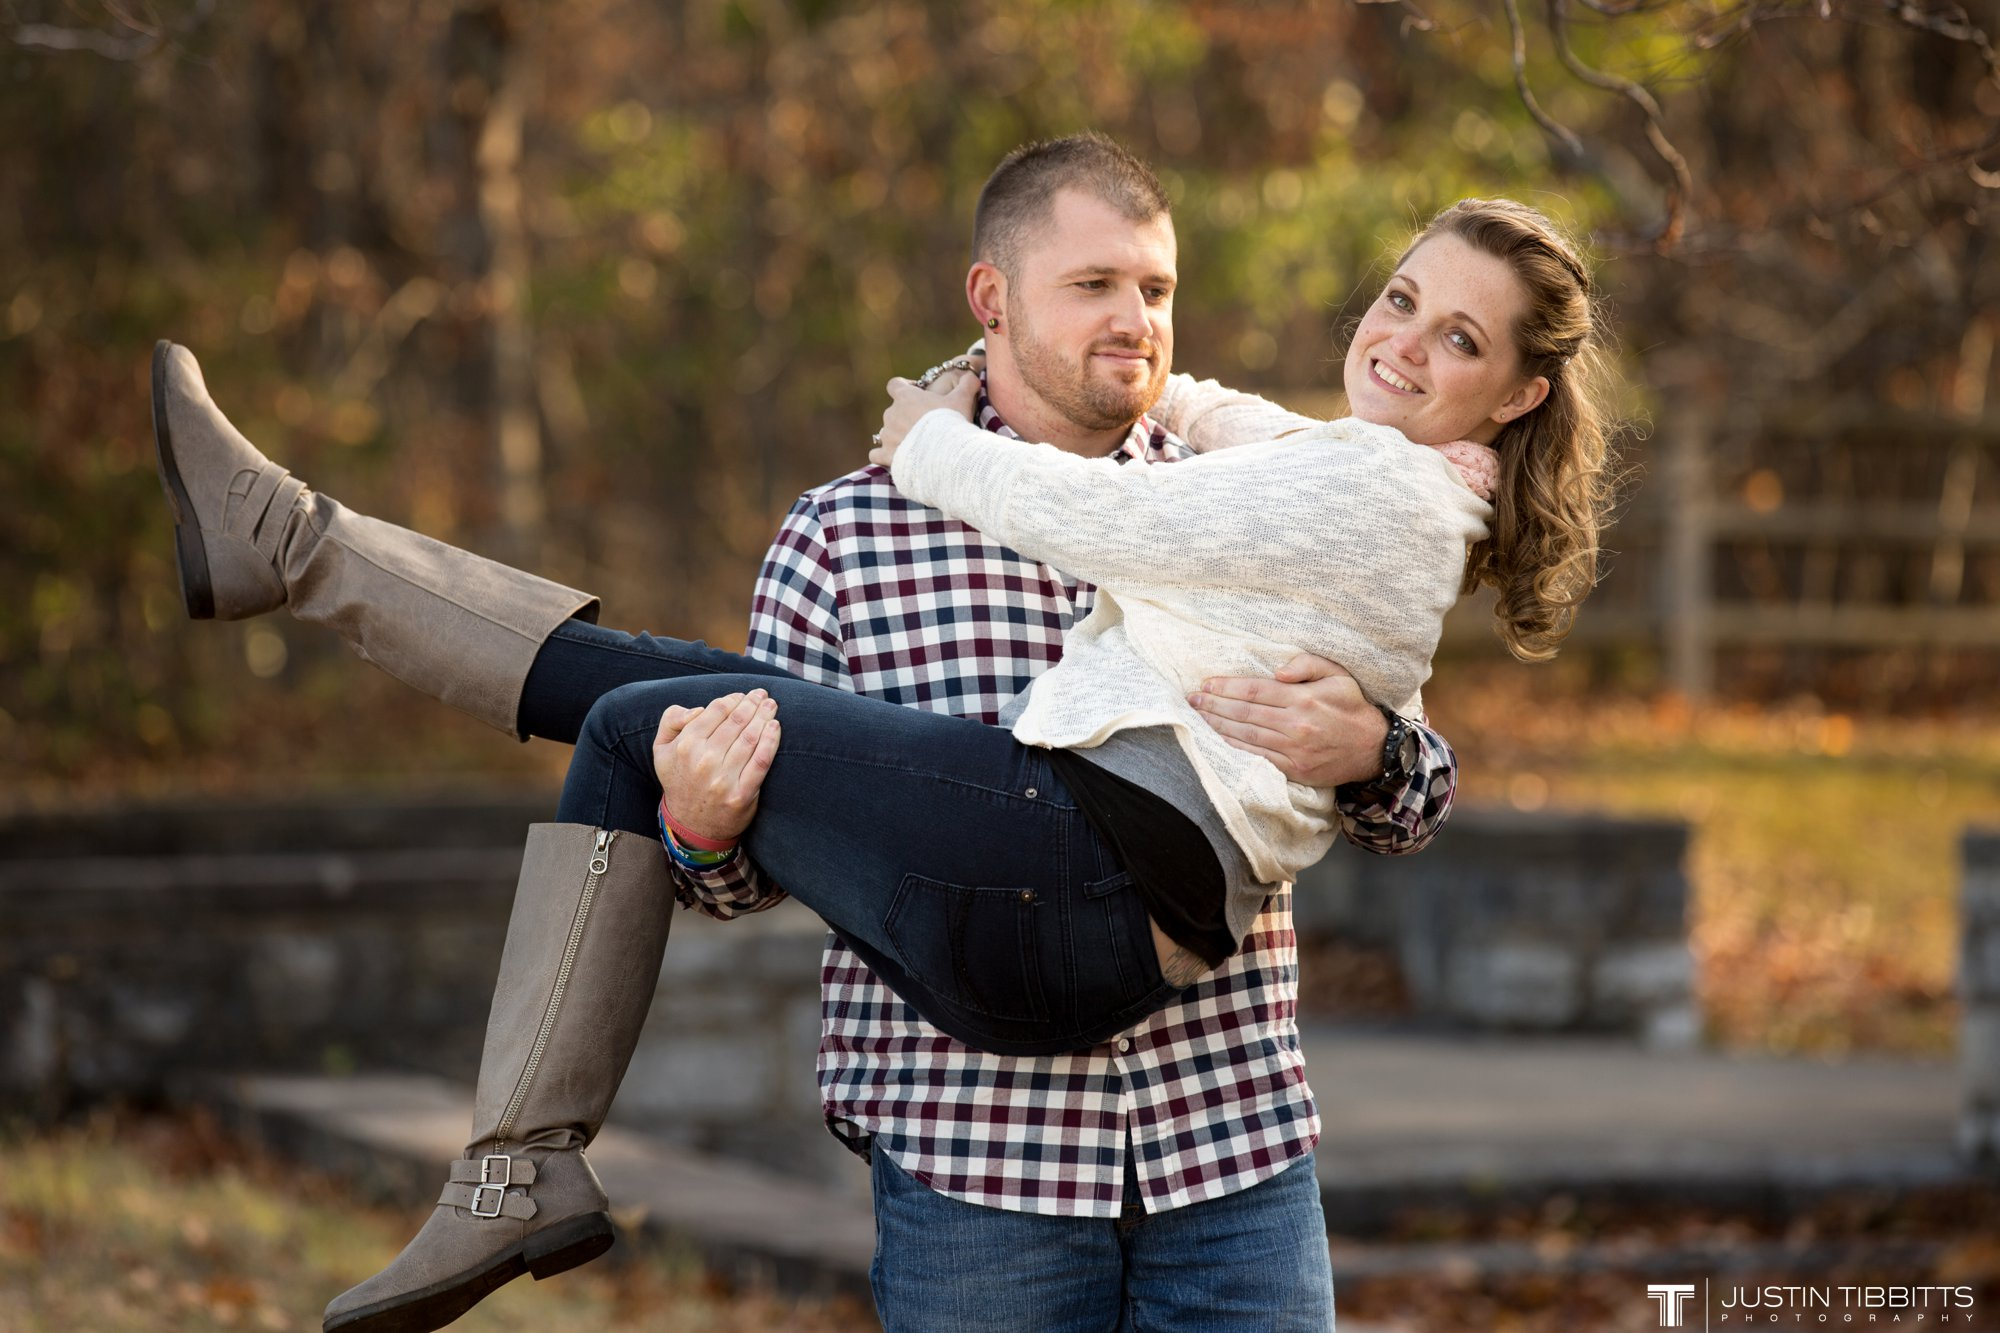 Justin Tibbitts Photography Ashlee and Steves Thatcher Park, New York Engagement Shoot-93